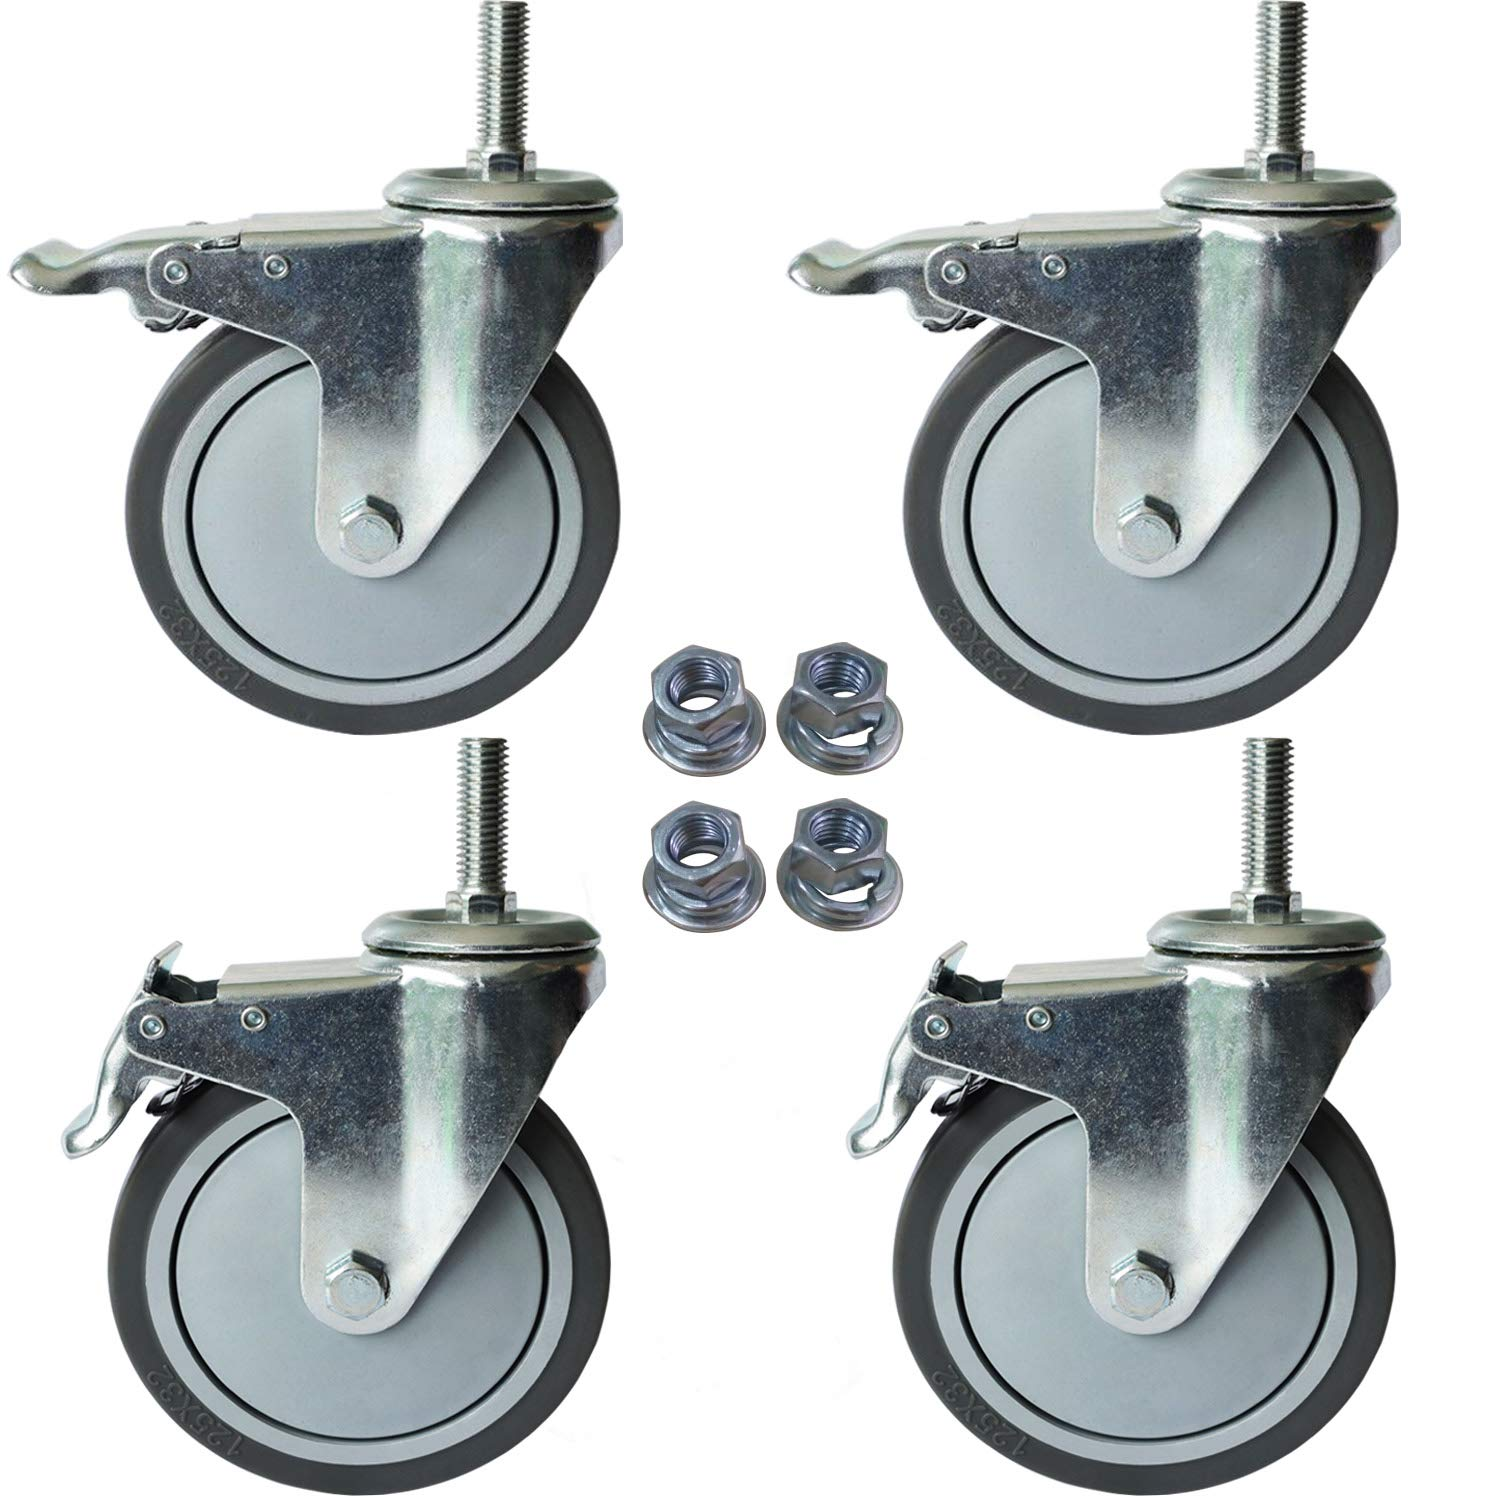 """5 Inch Total Lock Caster - 1/2""""-13 x 1.5"""" Swivel Threaded Stem Casters Wheels with Brake - Grey TPR Rubber Wheel (Set of 4)"""